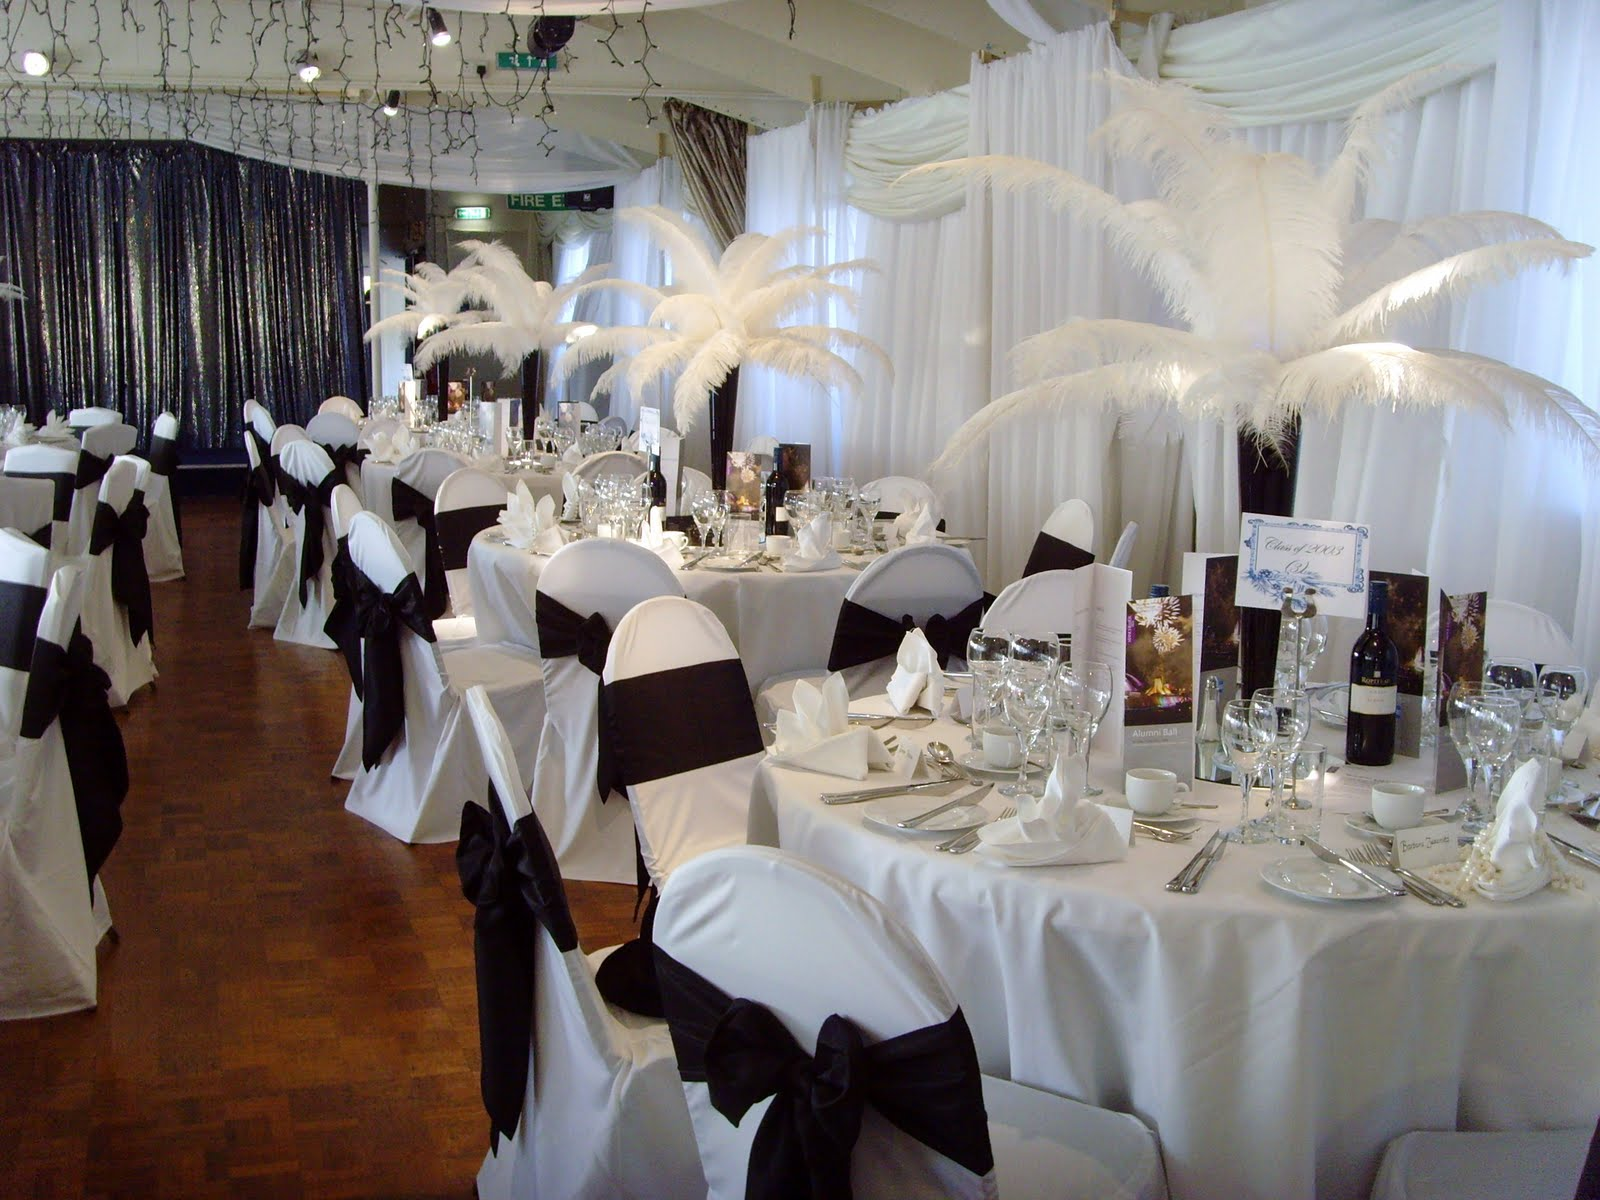 The best wedding decorations wedding venues decorations guide for Wedding table decoration ideas